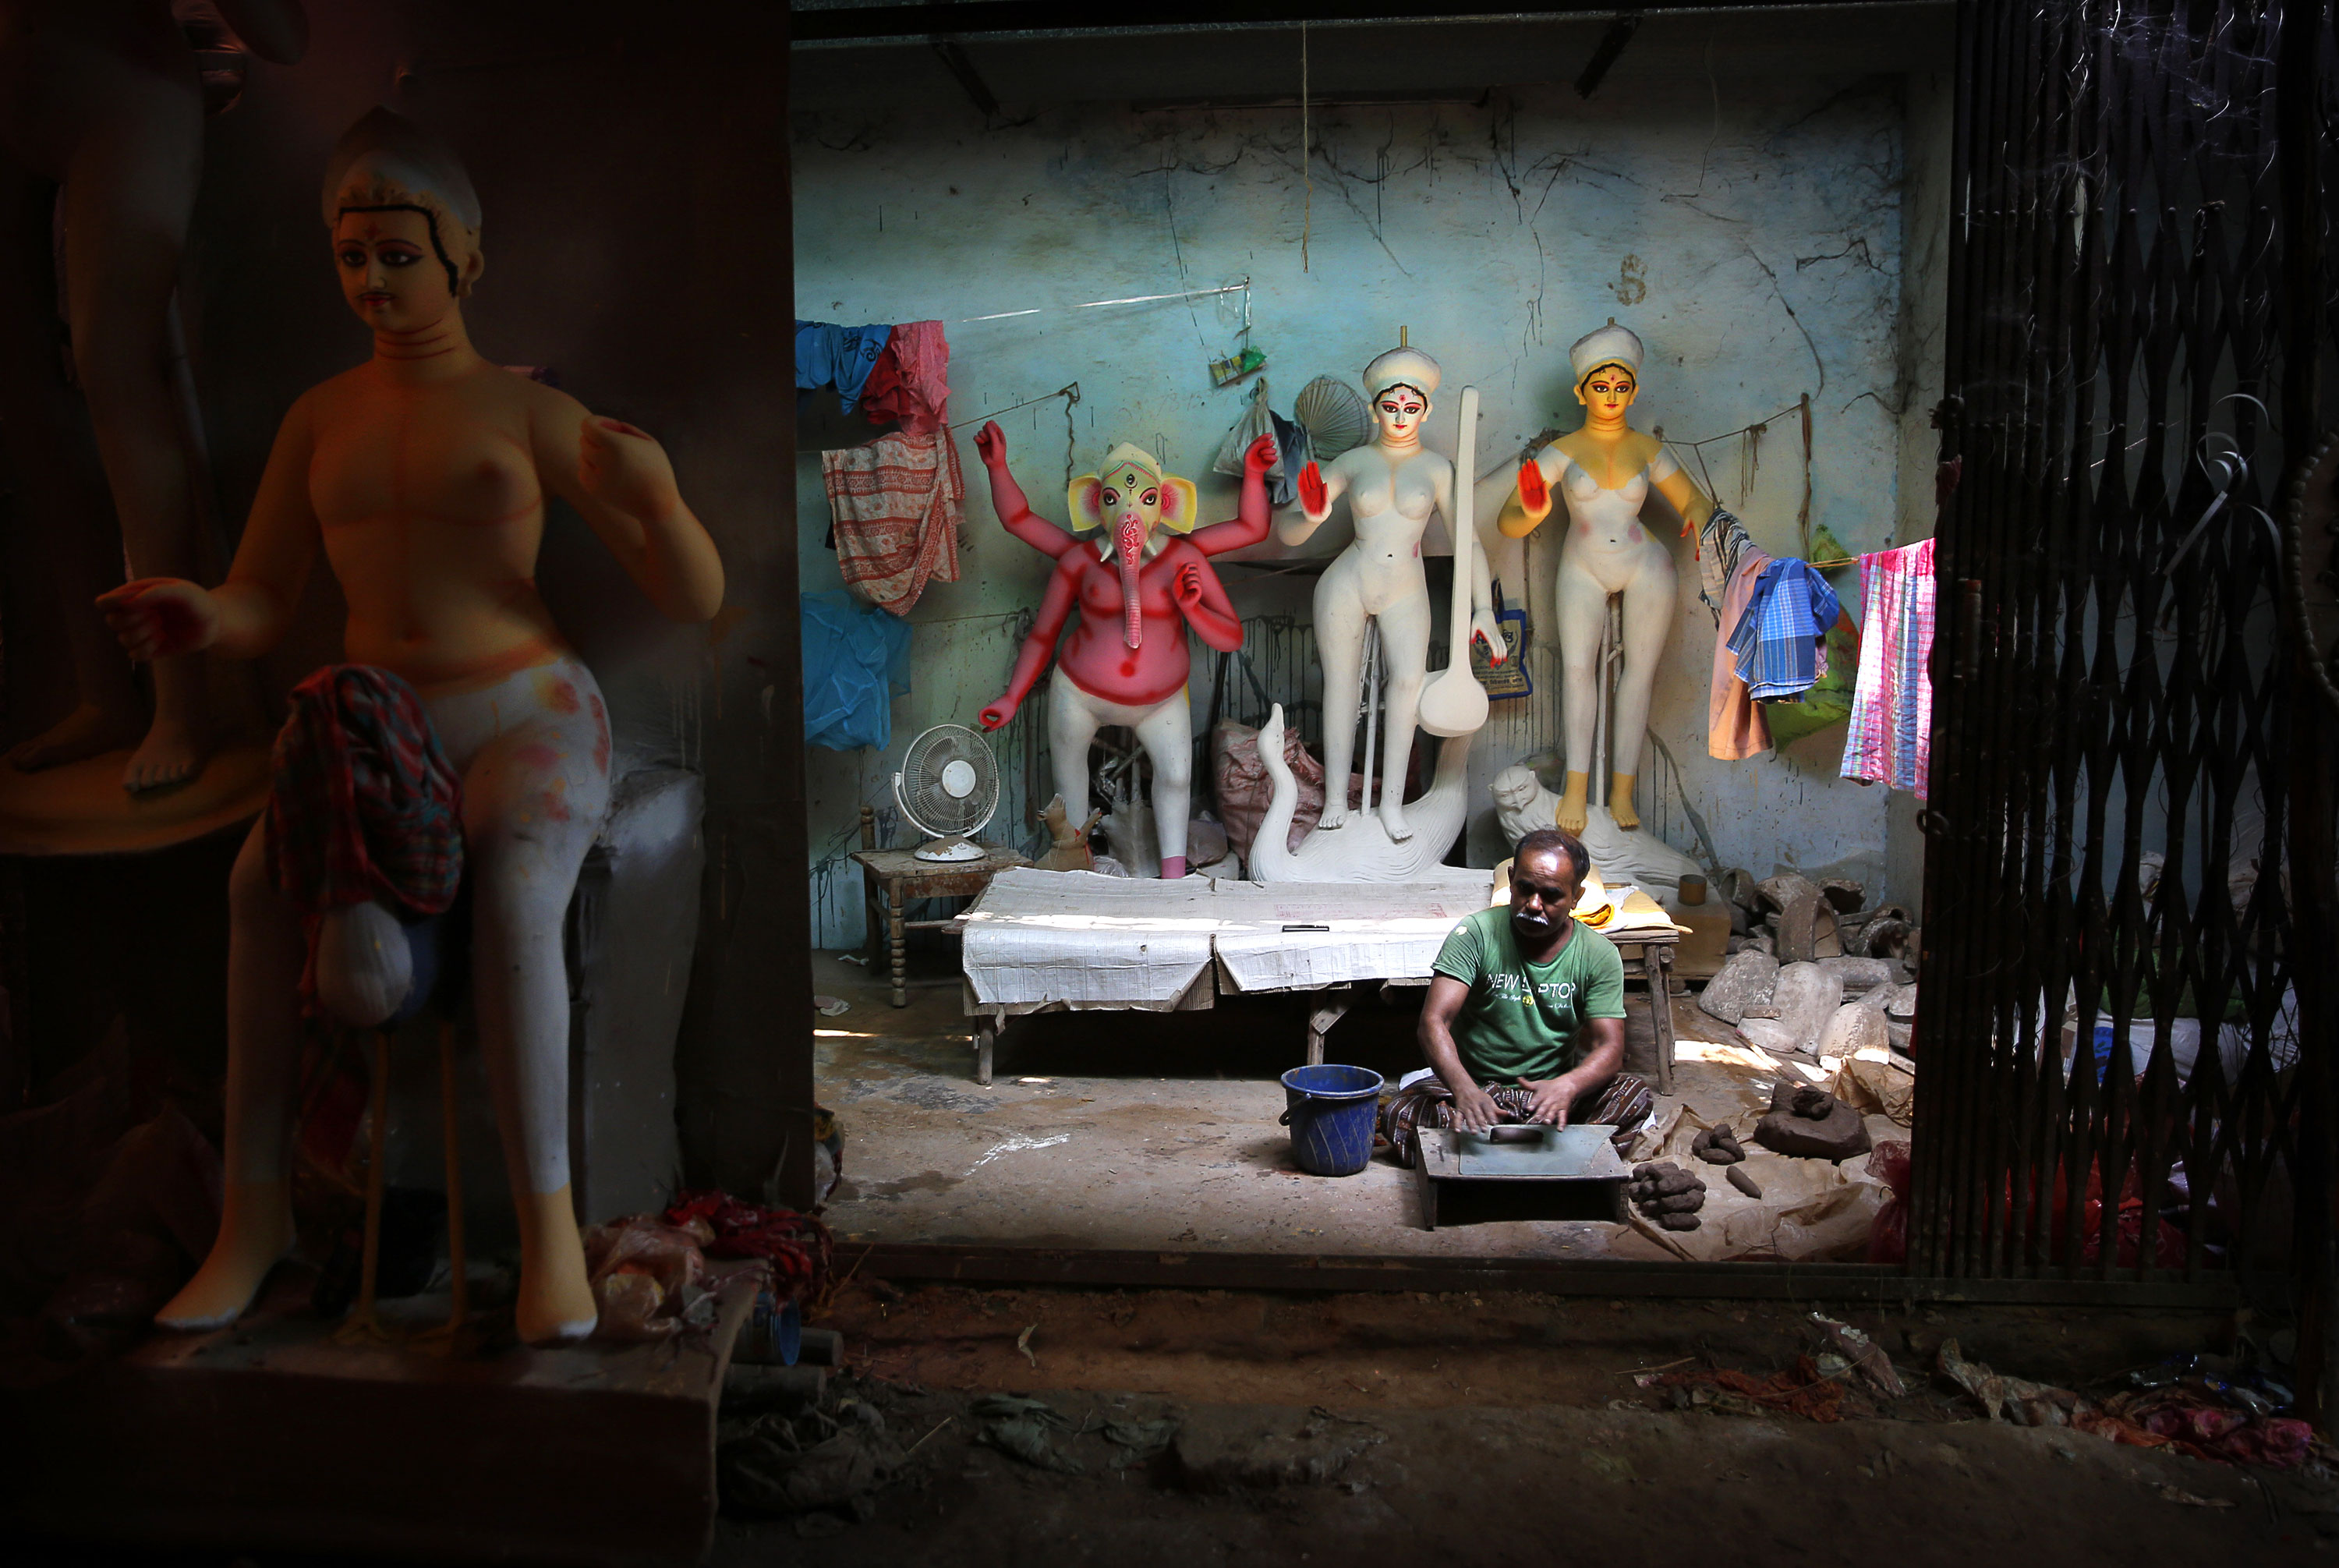 An artist moulds clay as he works on an idol of Hindu Goddess Durga in preparation for the Durga Puja festival. [Manish Swarup/AP]